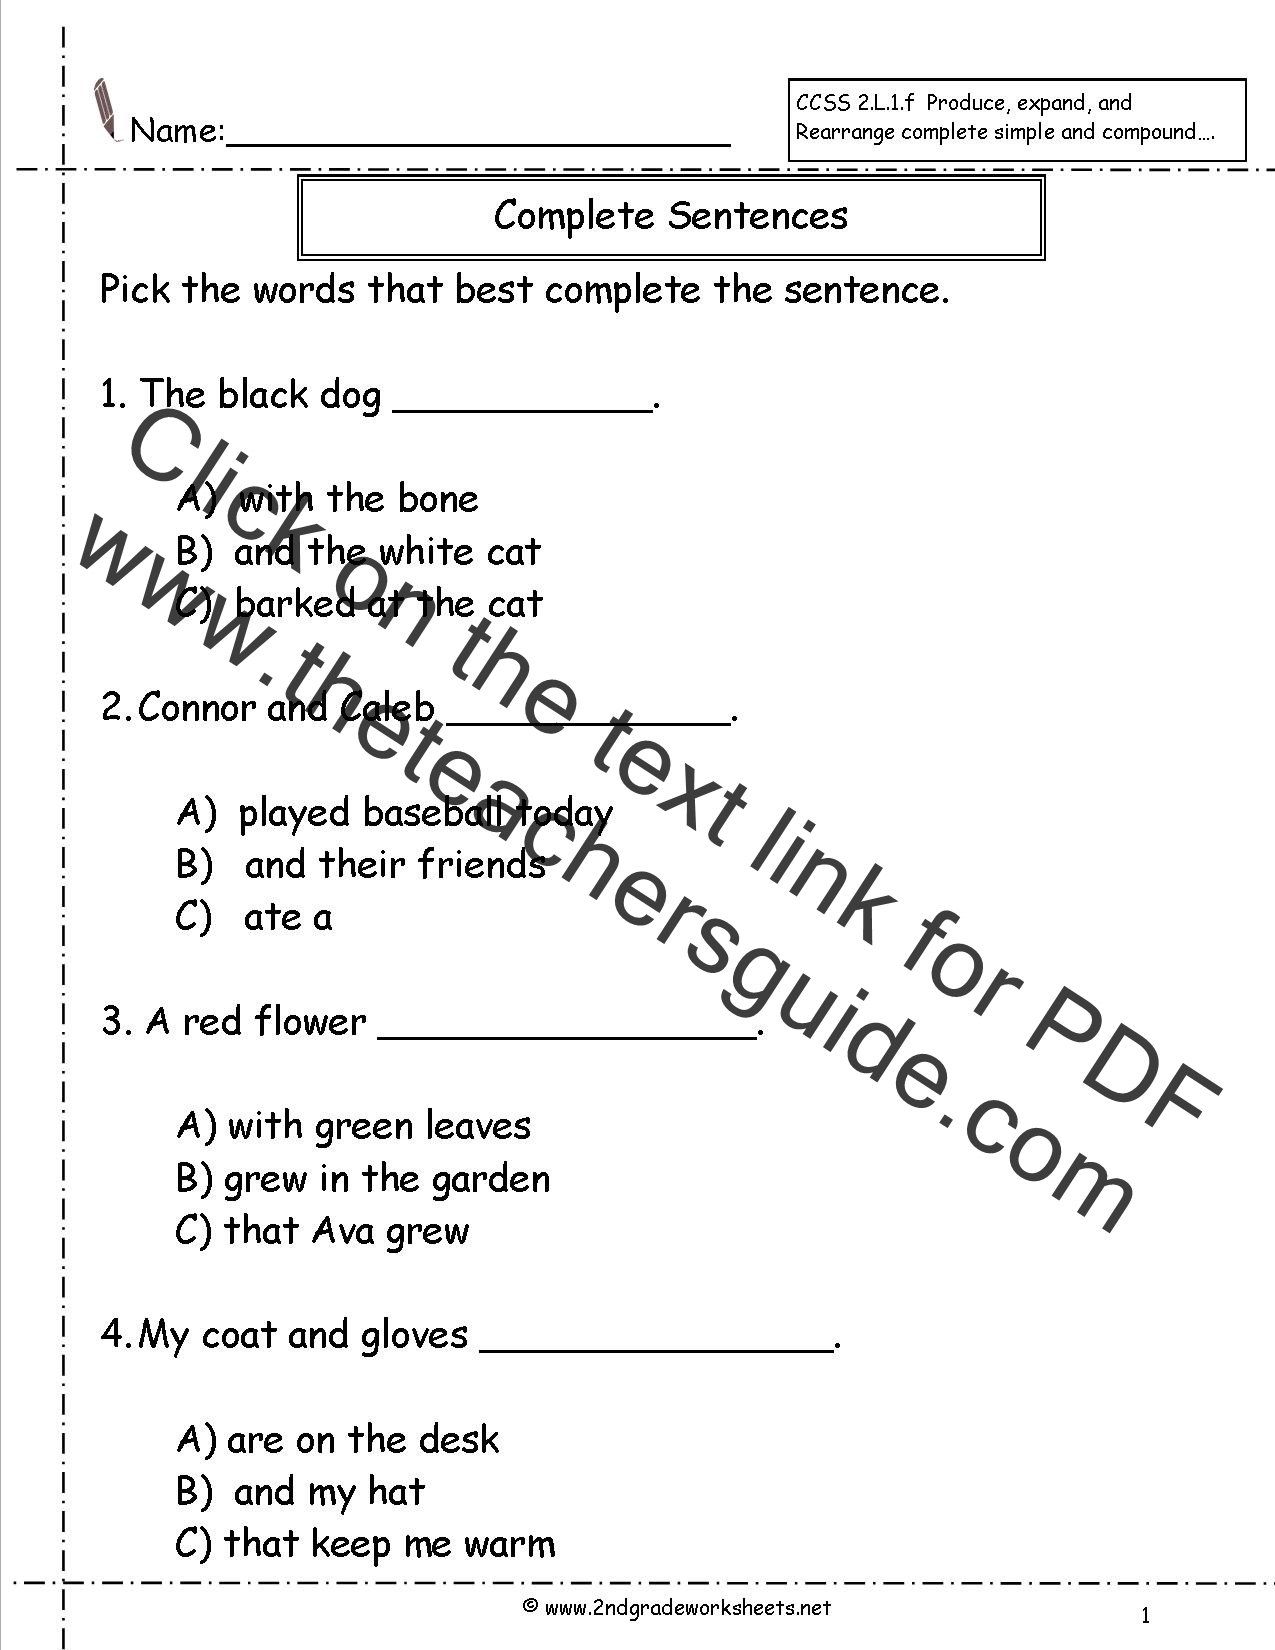 Second Grade Sentences Worksheets CCSS 2L1f Worksheets – Complete Sentence Worksheets